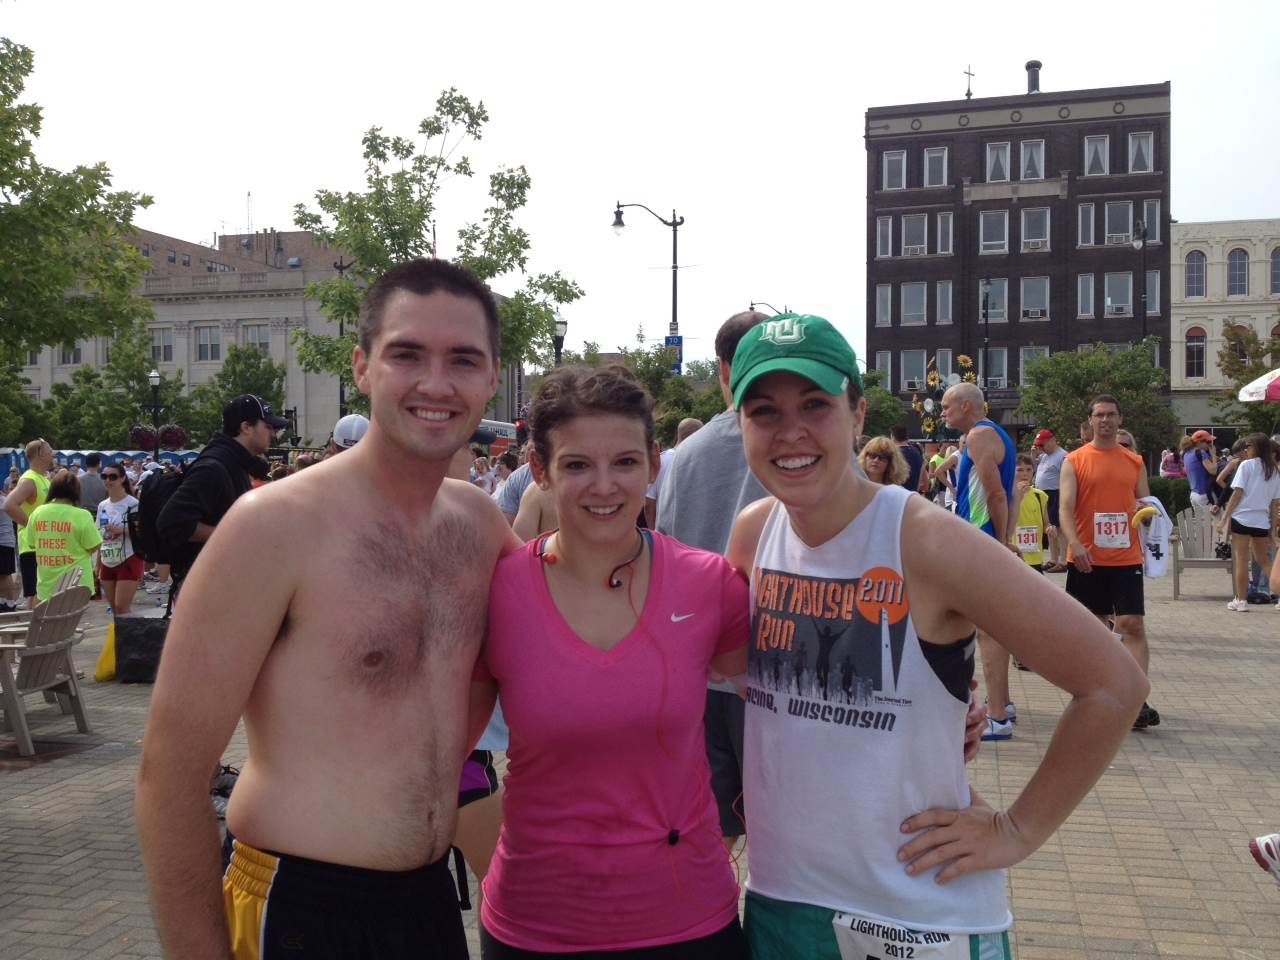 Joe, Lauren, and I at the end of the Lighthouse Run